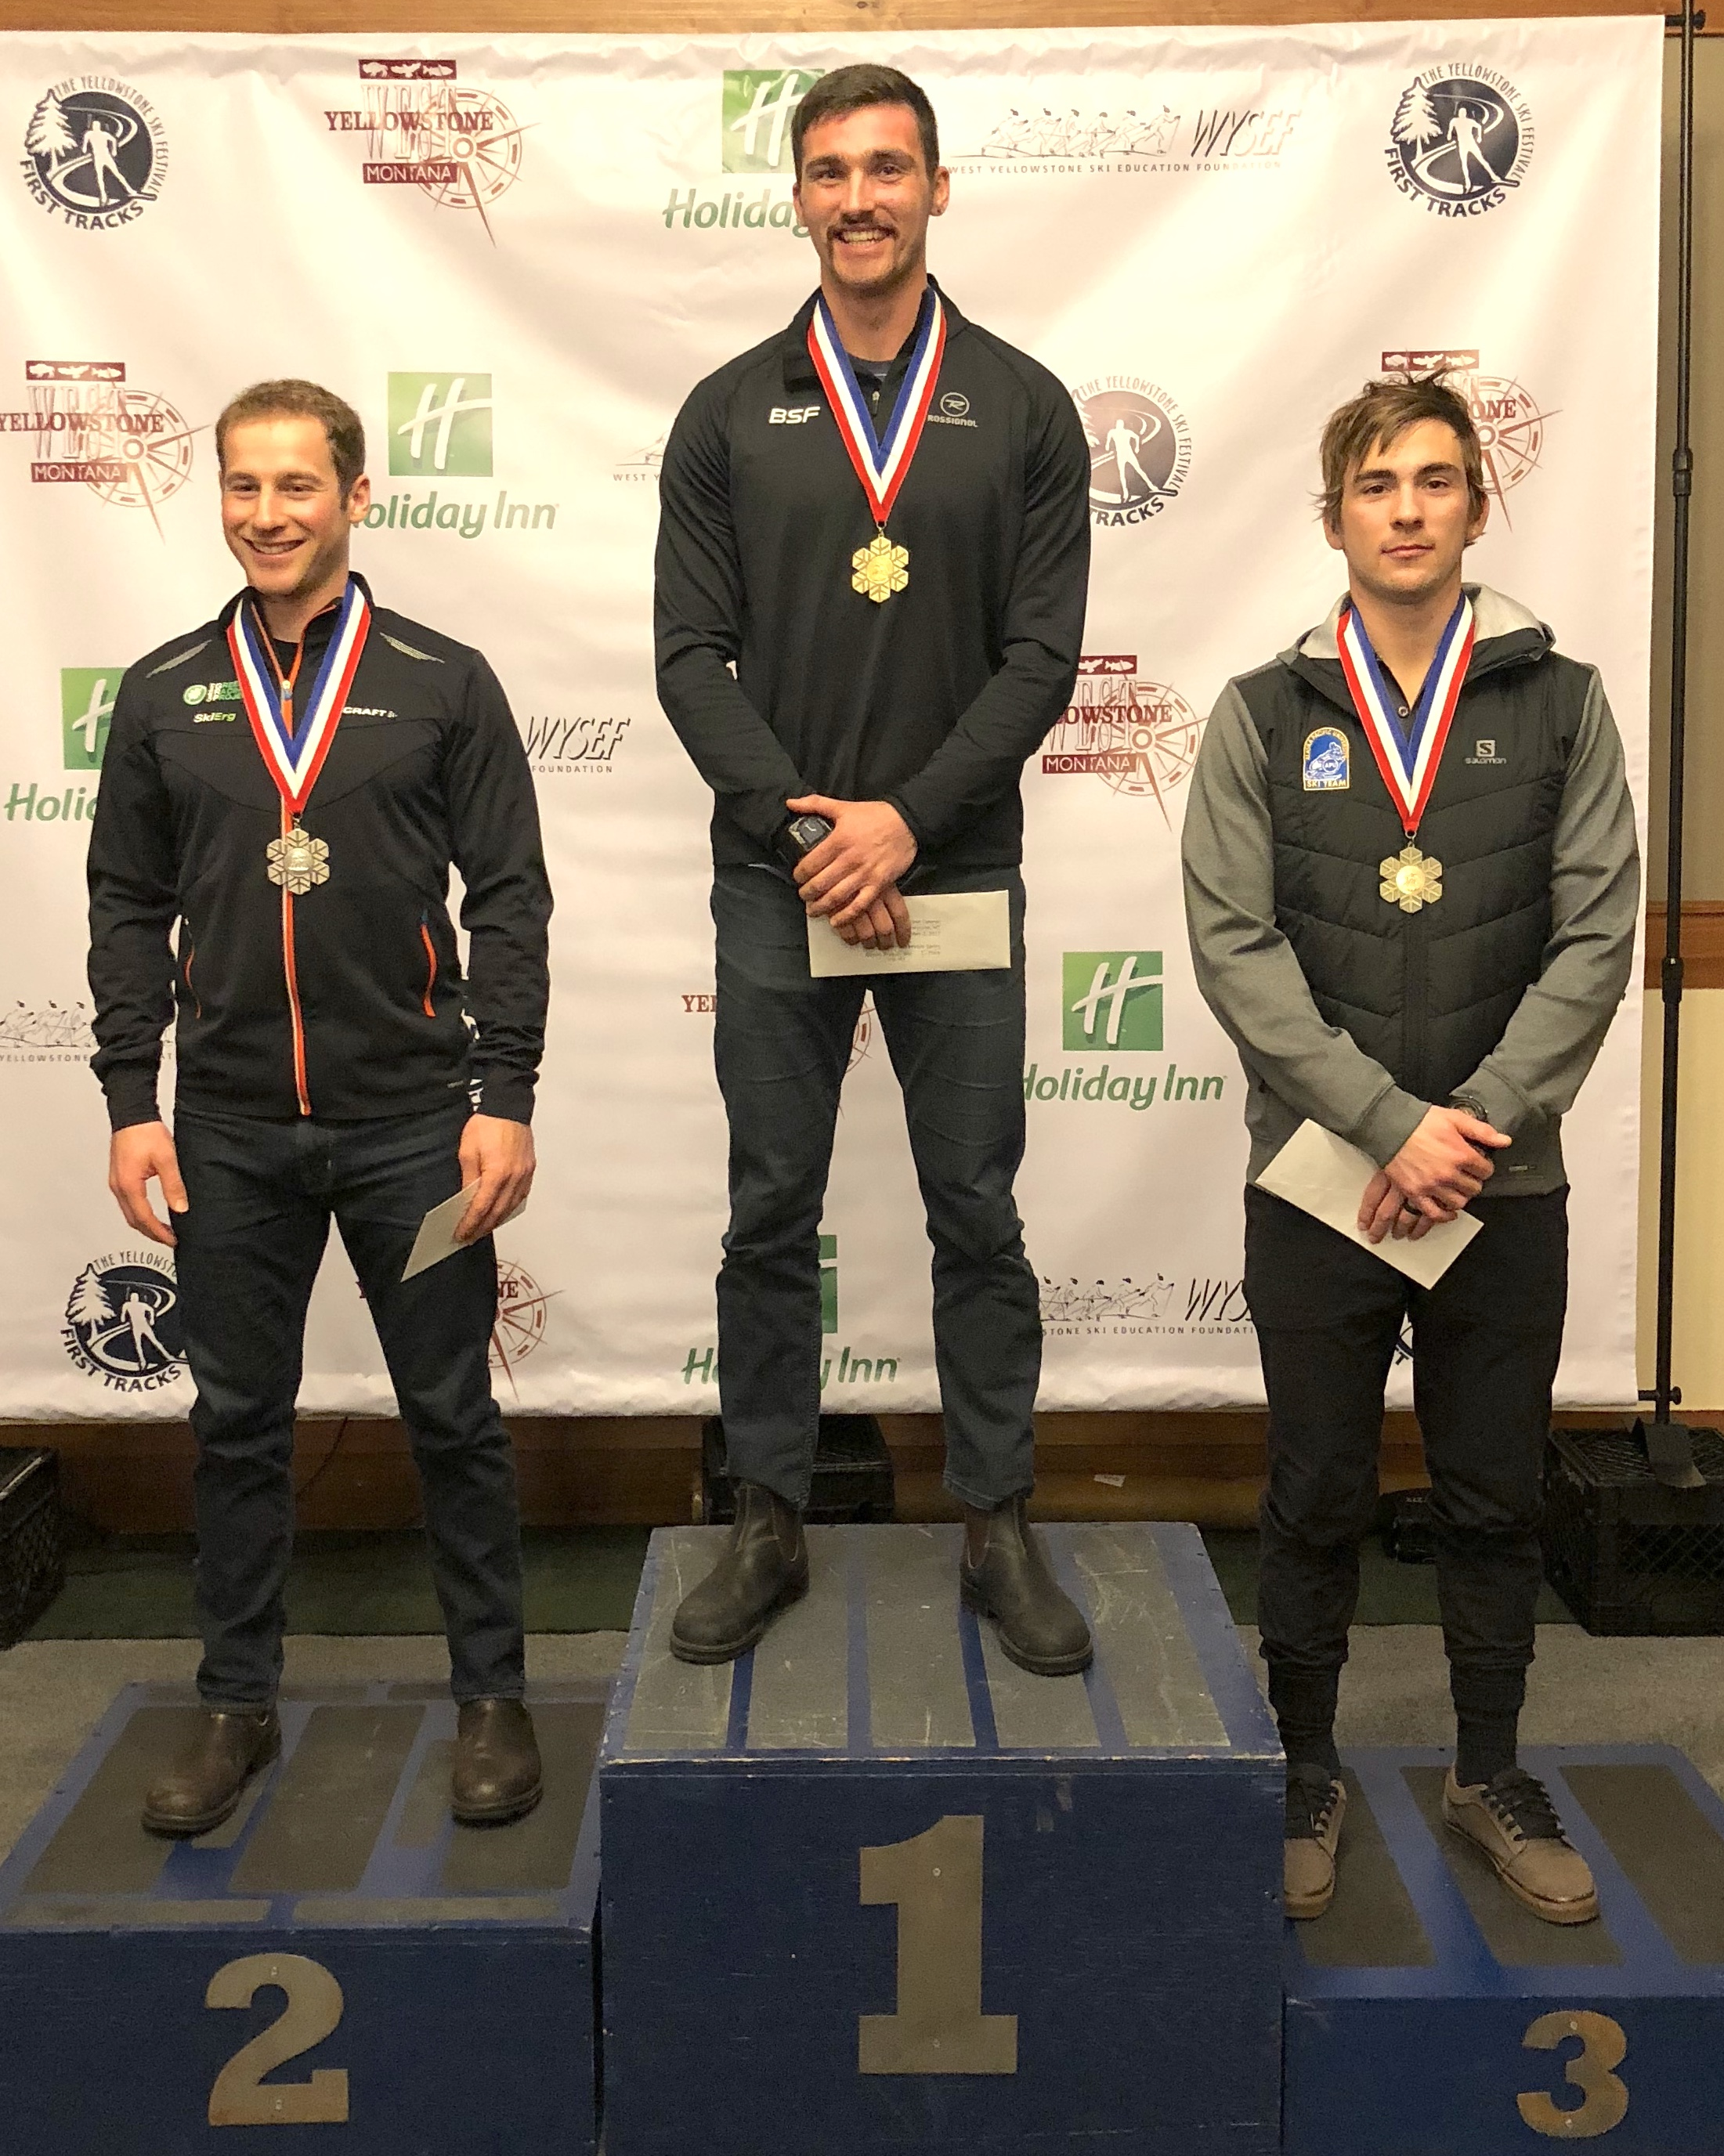 https://fasterskier.com/wp-content/blogs.dir/1/files/2017/12/mens-podium-west-sprint.jpg